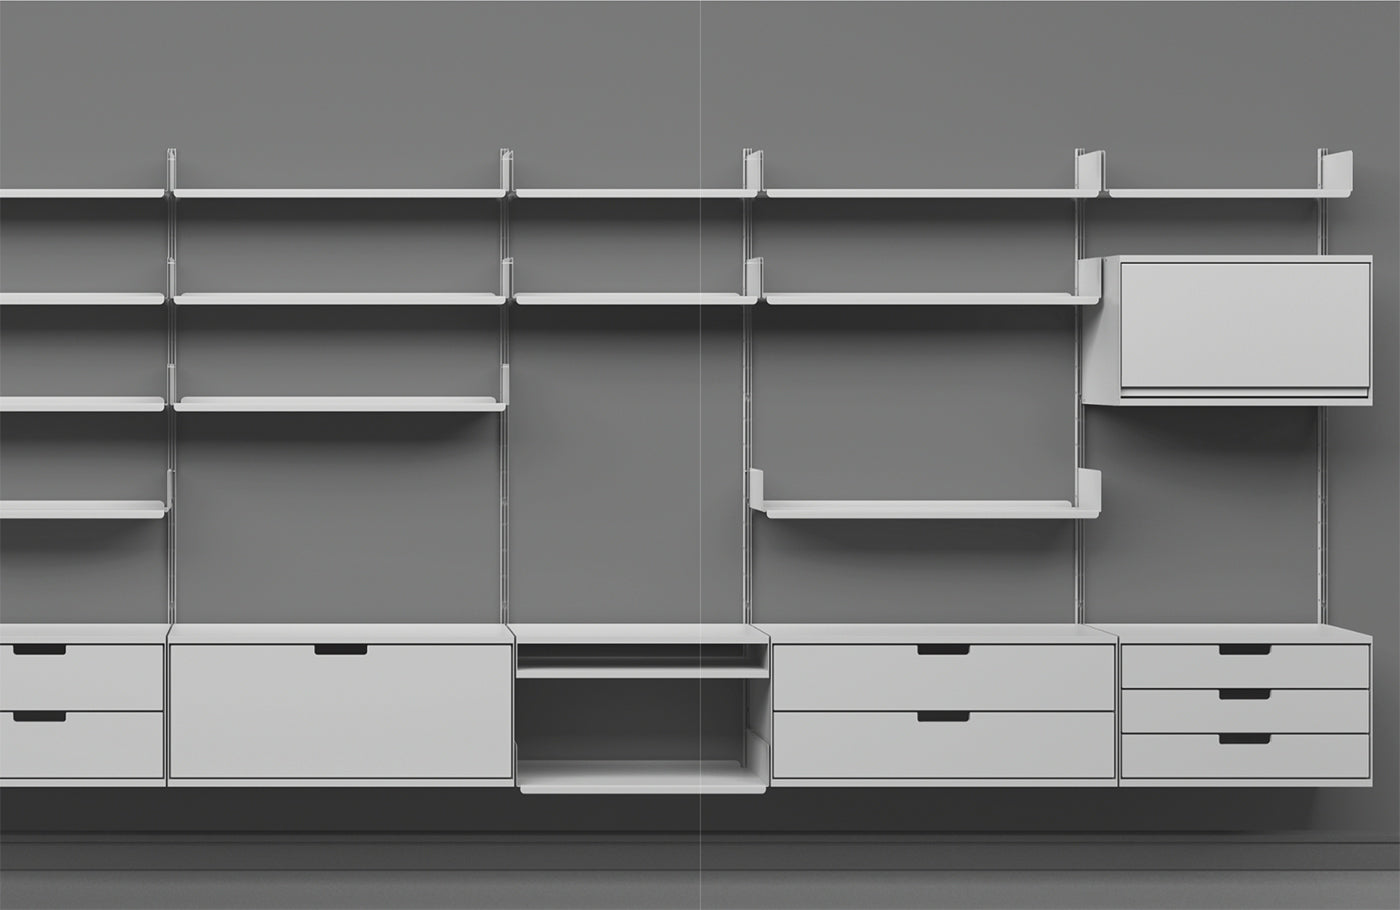 Shelving system photographed in black and white designed by Dieter Rams for furniture brand Vitsoe. (Design by Dieter Rams, photography by Vitsoe)